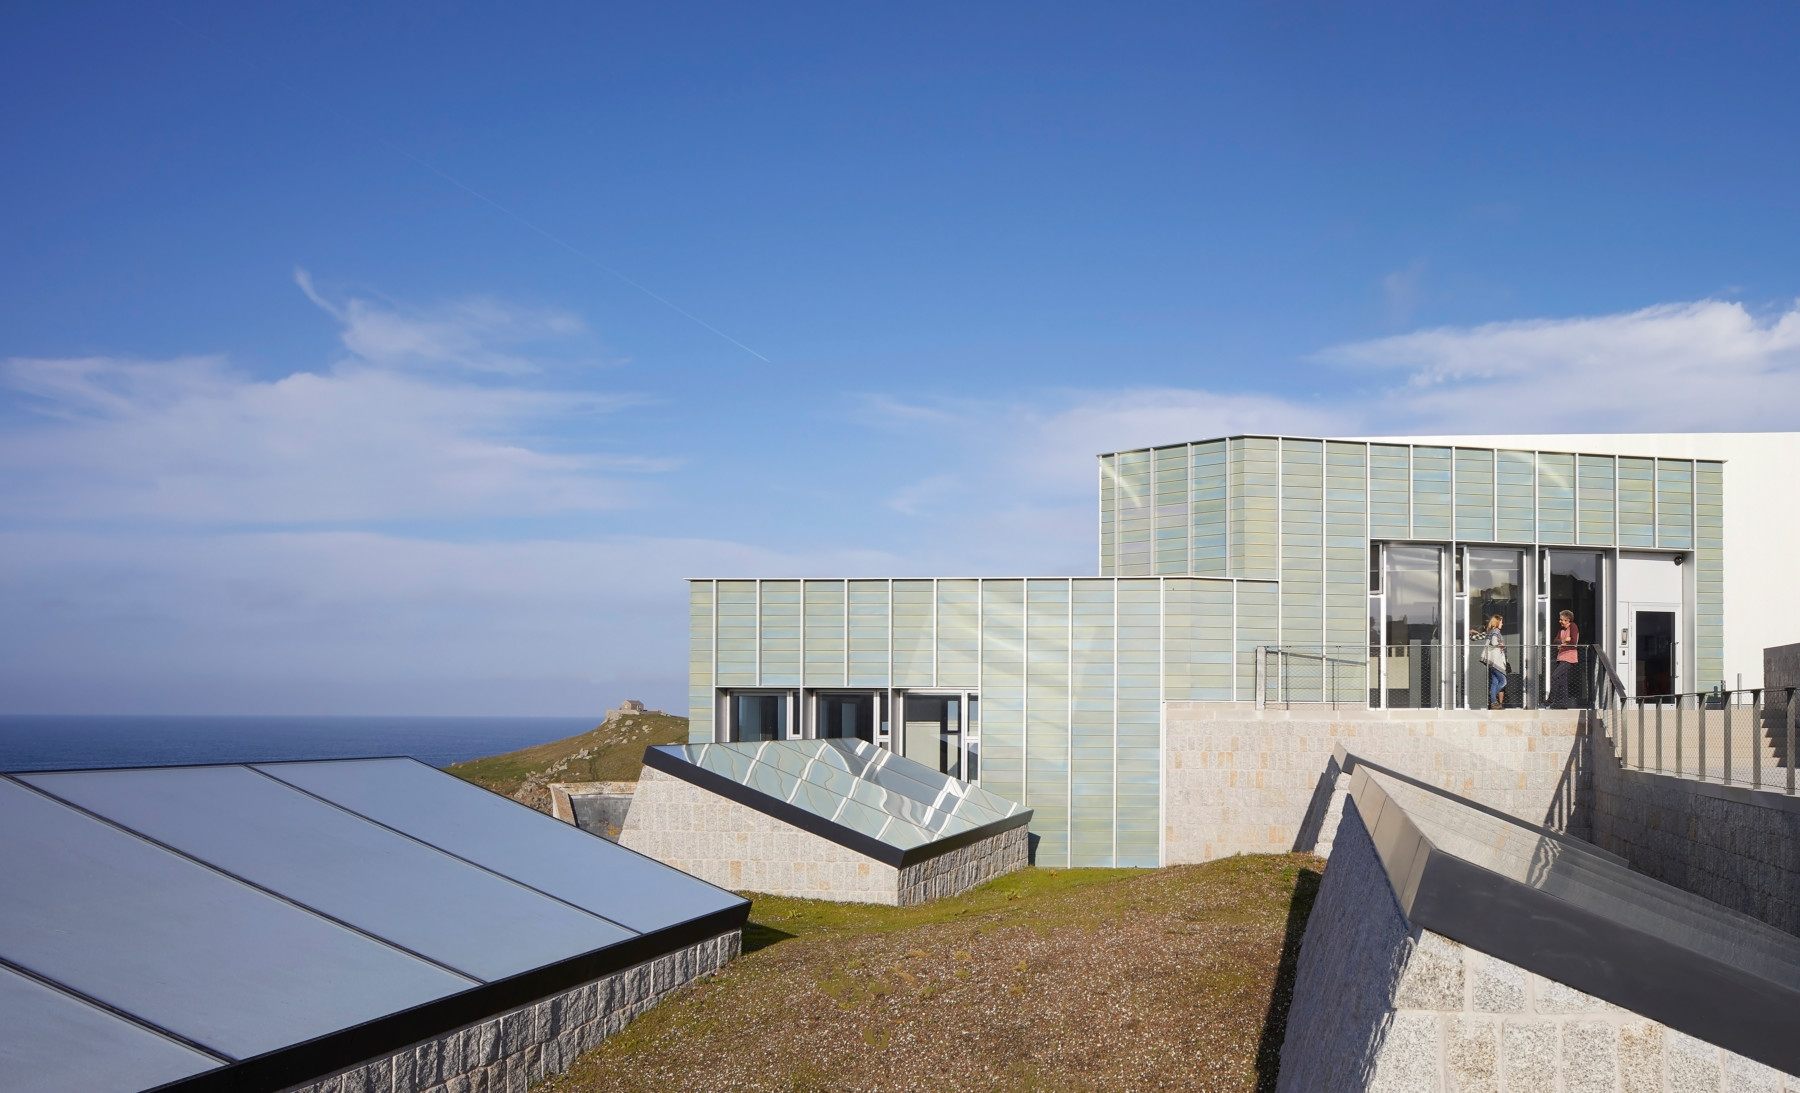 Jamie-fobert-architects-tate-st-ives-ceramic-leech-beach-cornwall-sky-Hufton+Crow